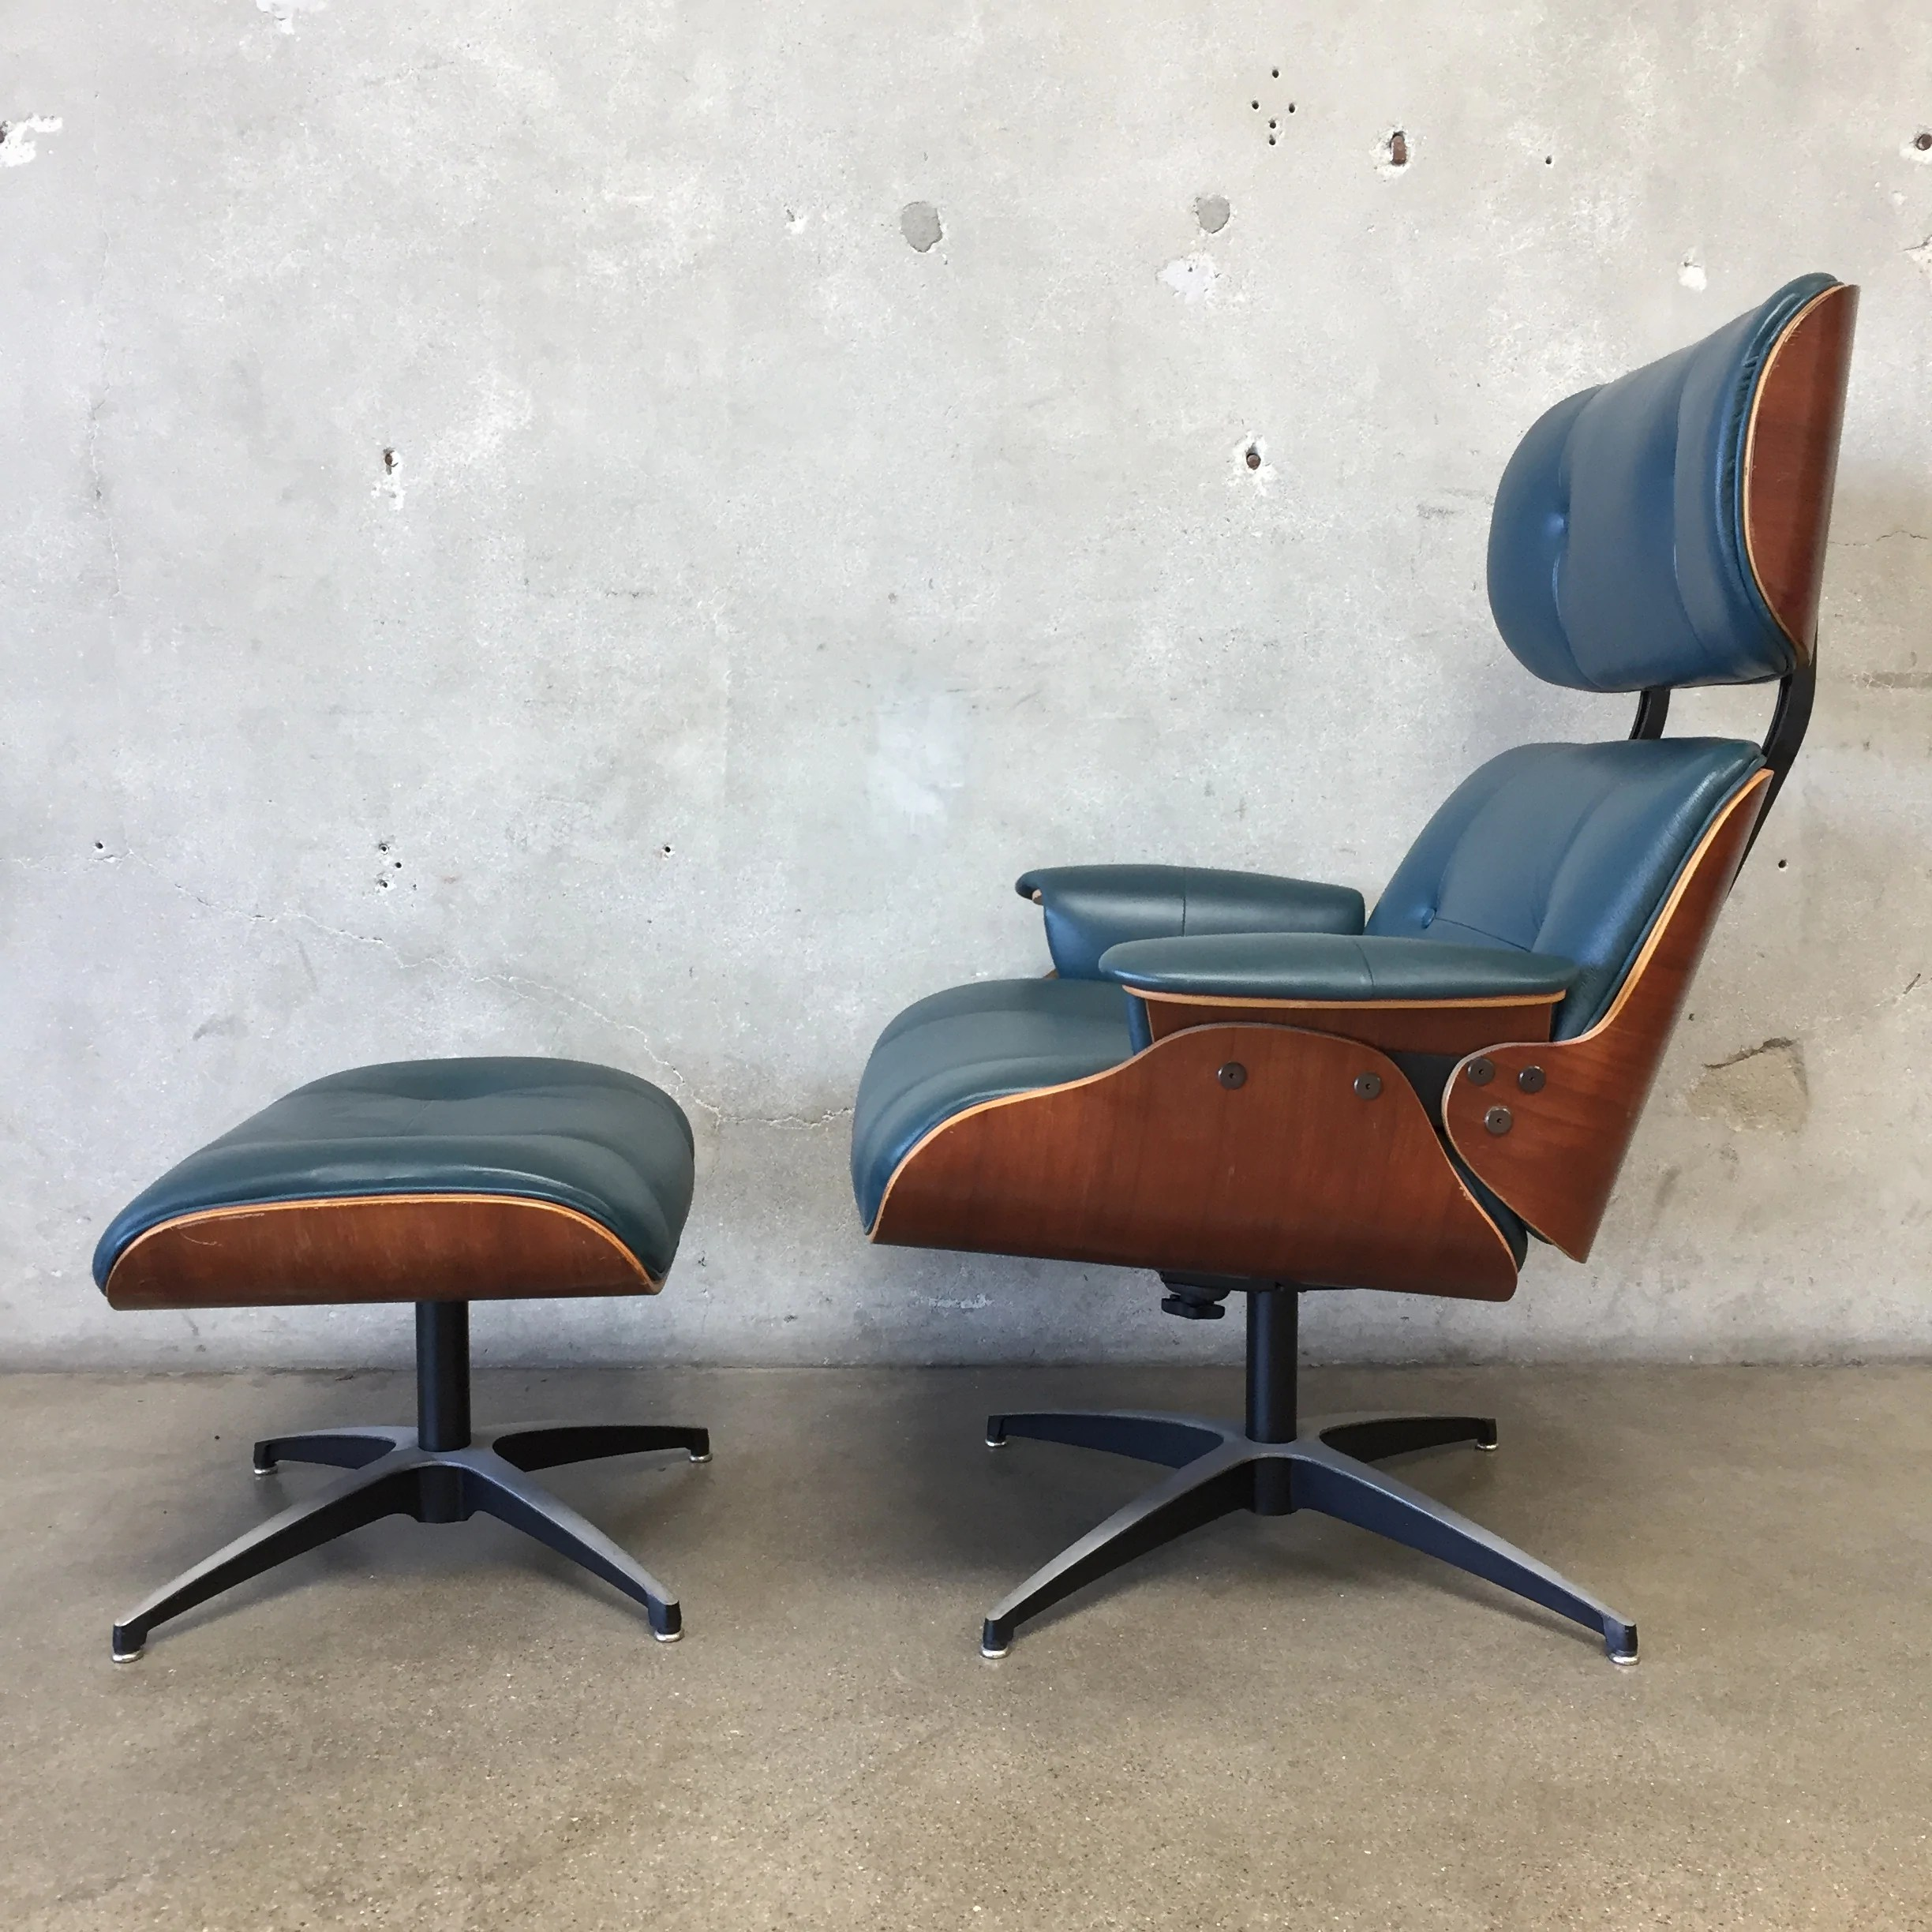 Fullsize Of Eames Style Chair And Ottoman